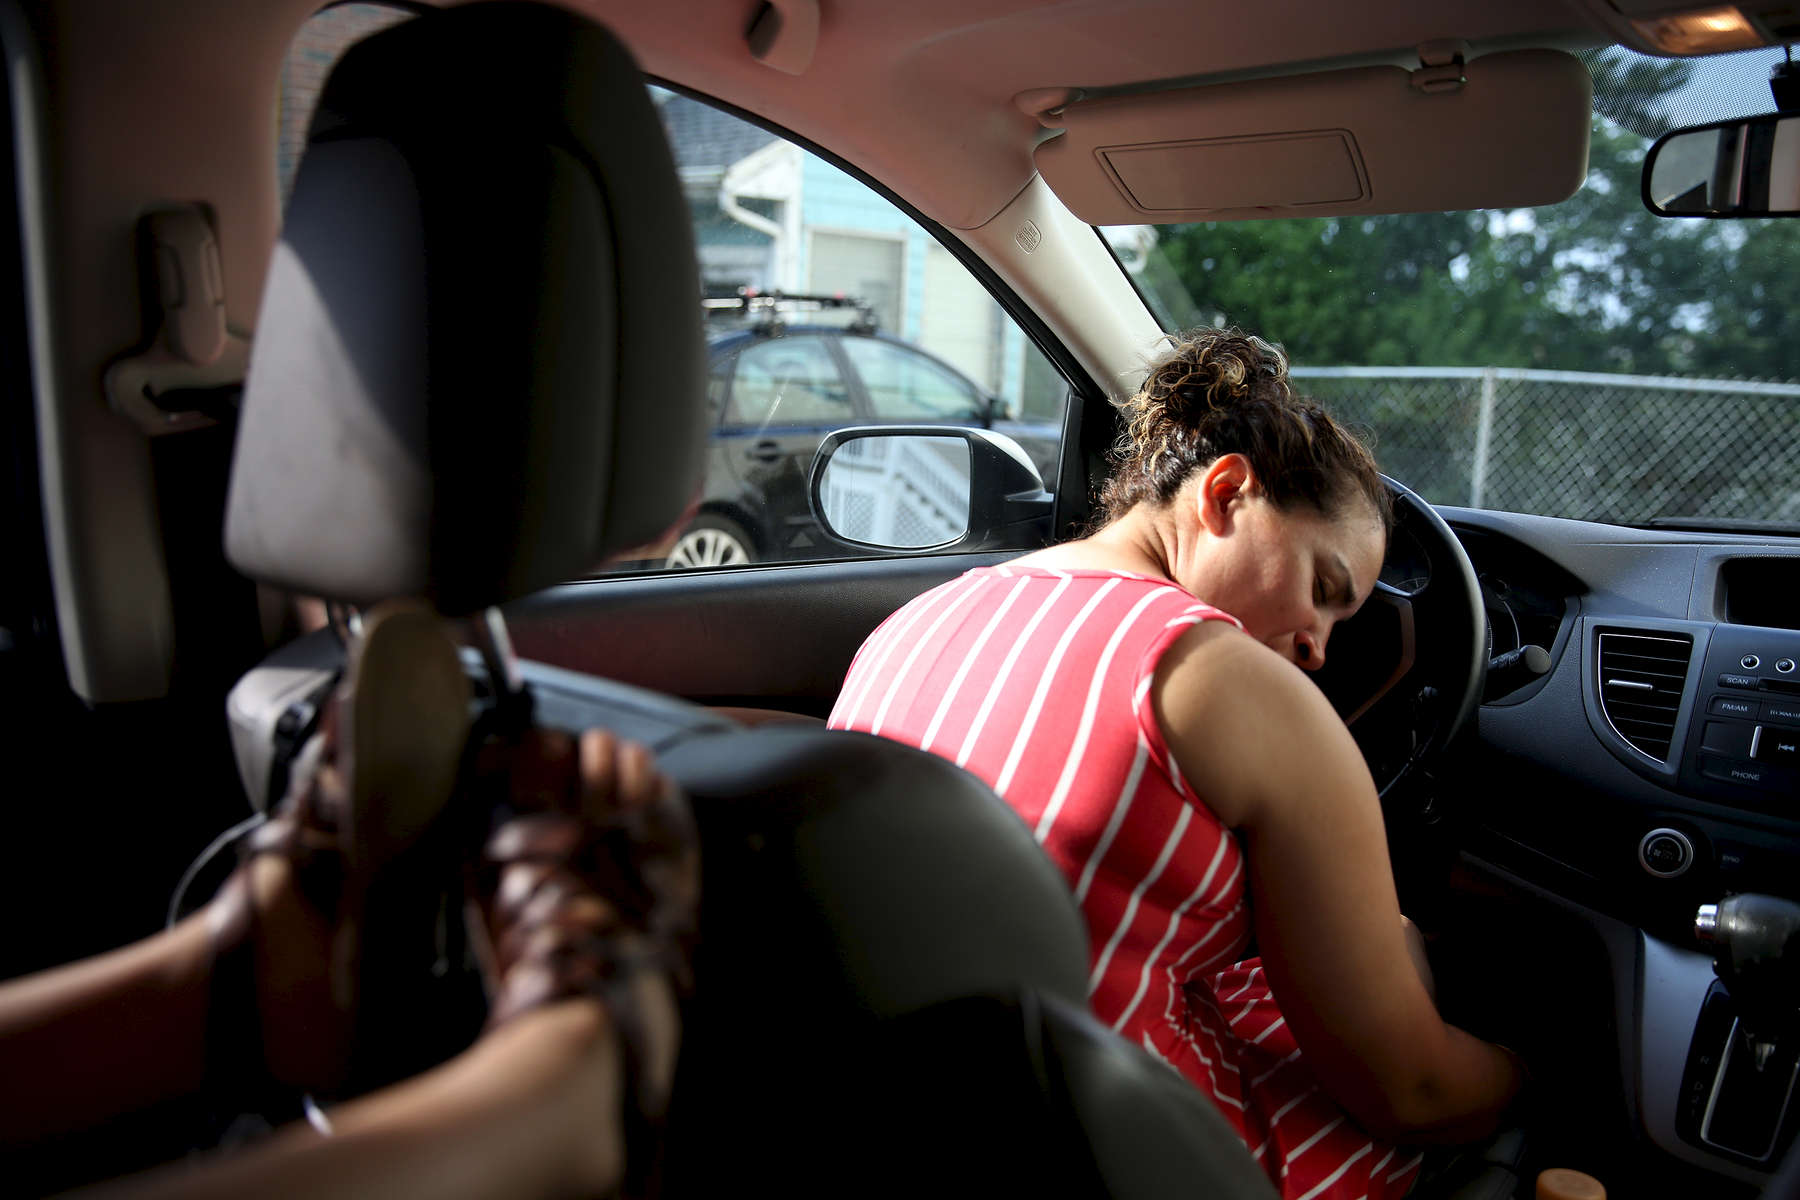 Revere, MA--7/27/2018--  After a full day of work, Patricia rested her head on the steering wheel for a moment after picking up Camila from the babysitter. Since the TPS decision has come down Patricia has been plagued by questions and what-ifs. Will immigration agents kick in her front door and drag her out in handcuffs? Will they come get her at work? If they do, what about her daughter? Who would care for her? Here in the US she has a life. Here, she is free. Here, she is home. But for how long?